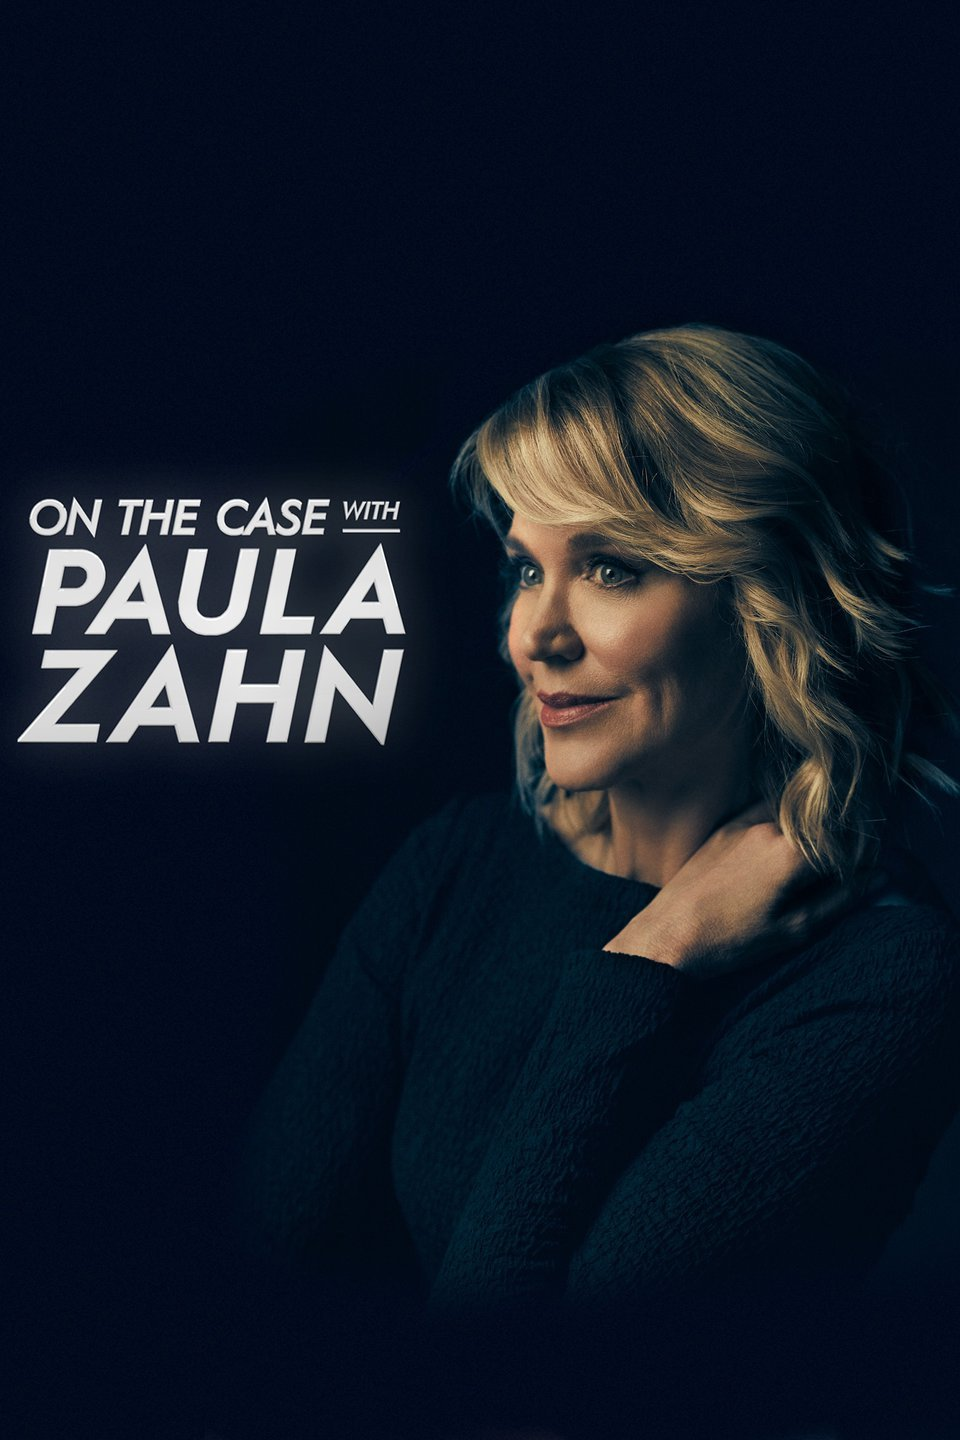 On The Case With Paula Zahn - Season 19 Episode 15 - No Body Two Crimes